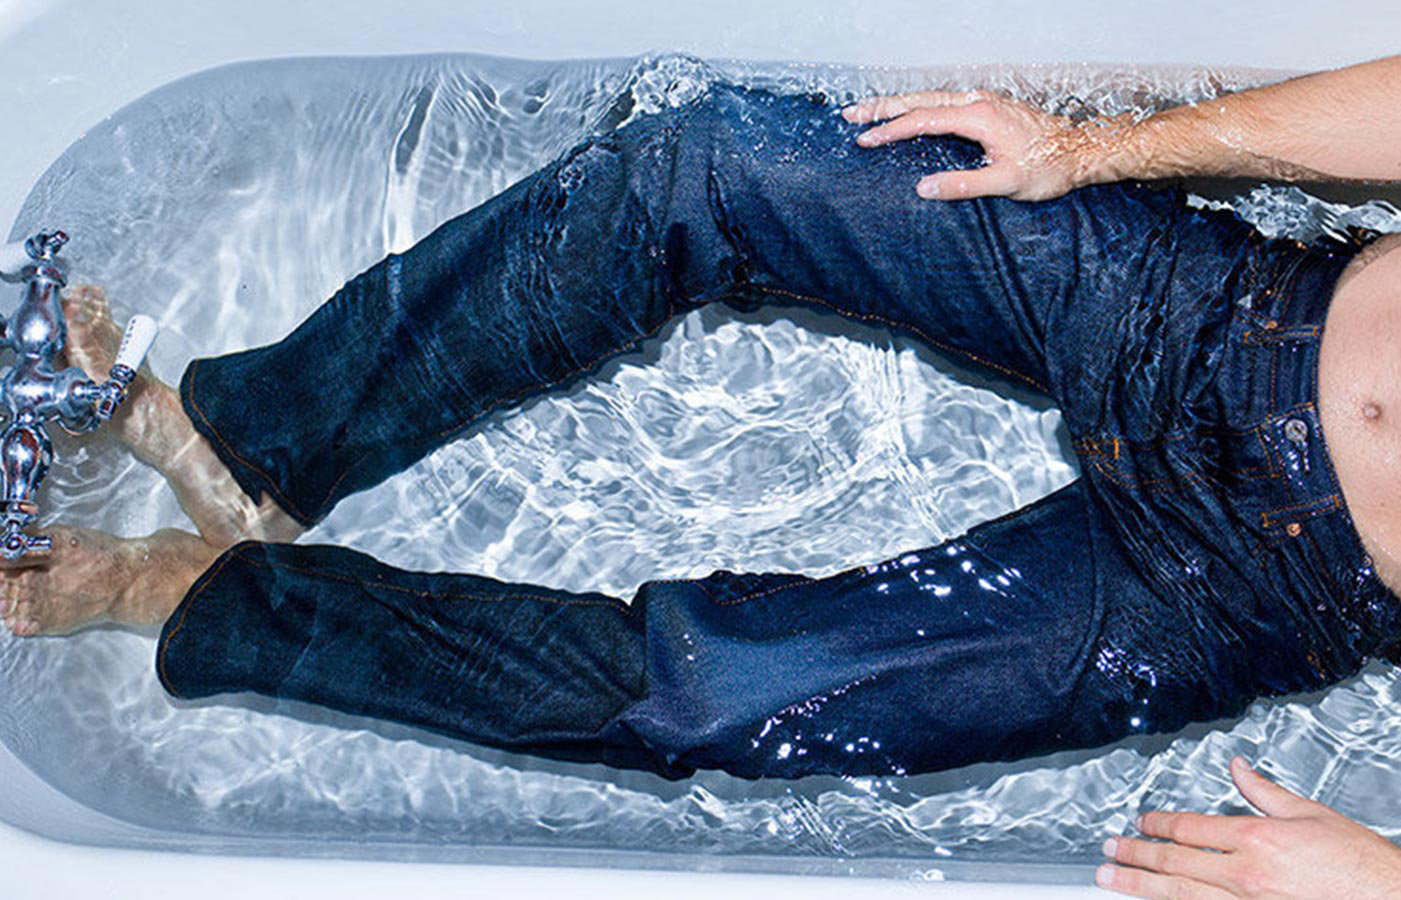 Man lying inside a bathtub full of water wearing a levi's 501 Shrink to fit